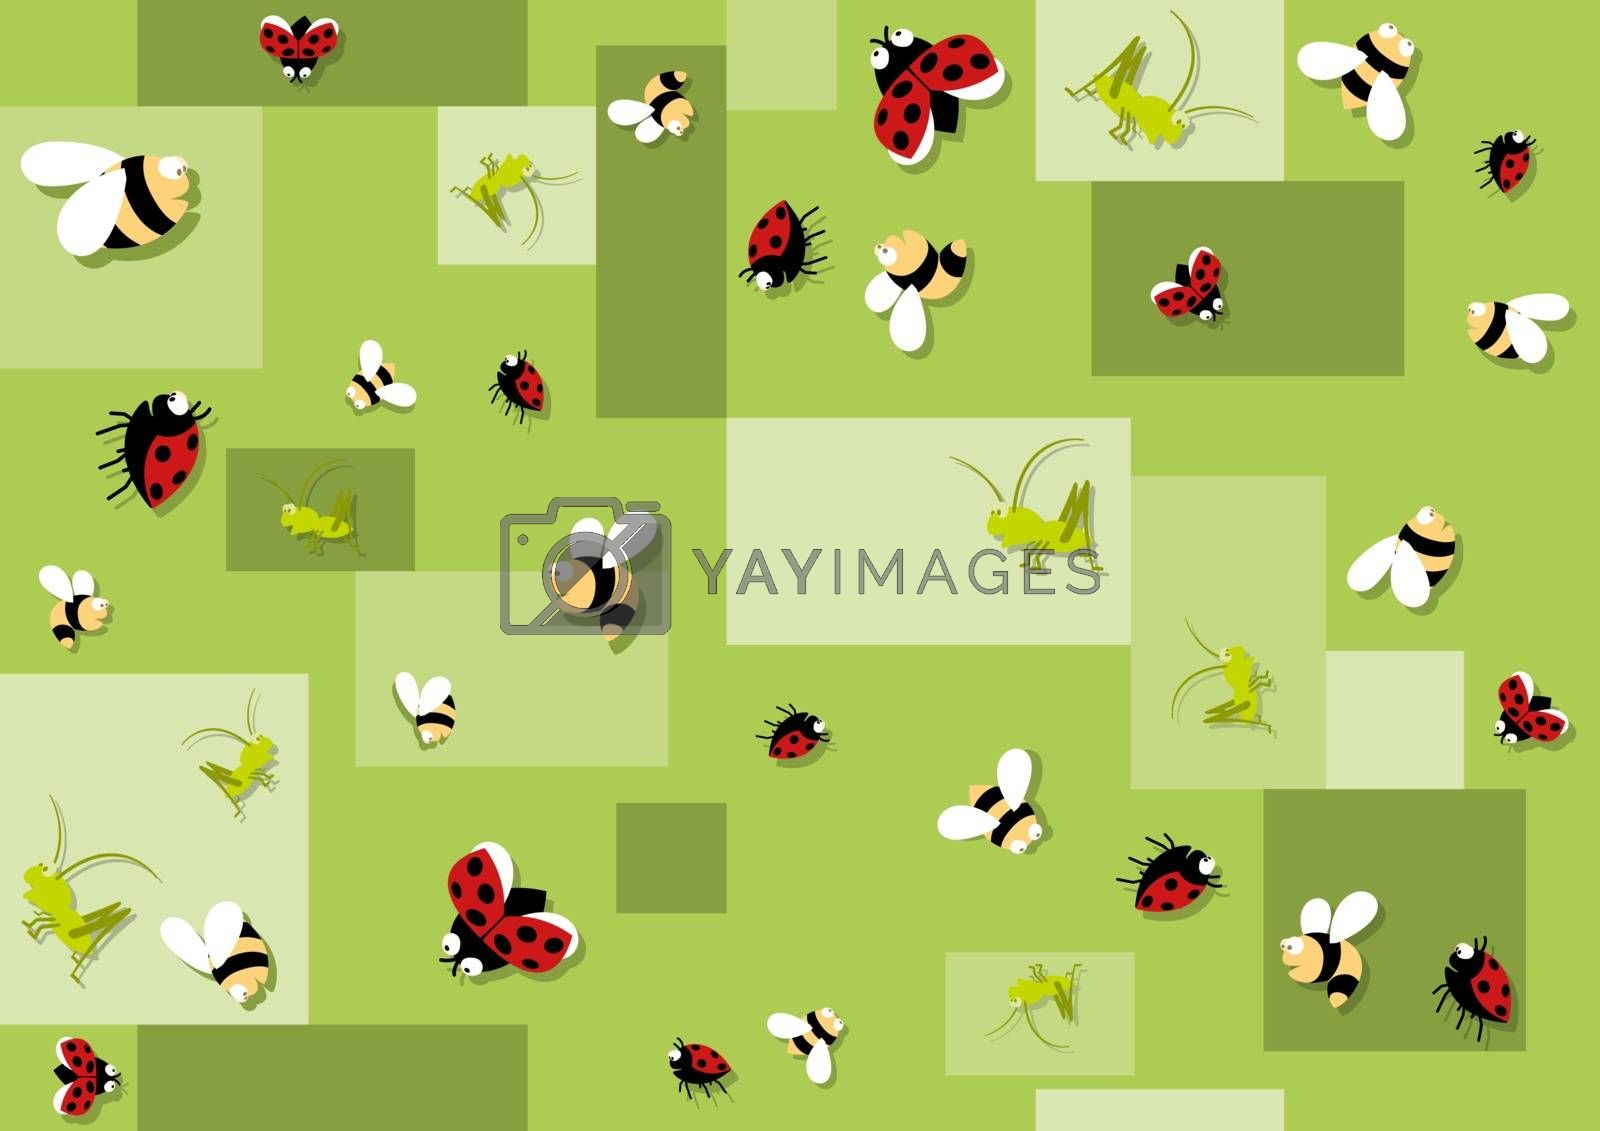 Seamless Baby Pattern with Bees and Beetles on Green Background - Repetitive Print Texture, Vector Illustration